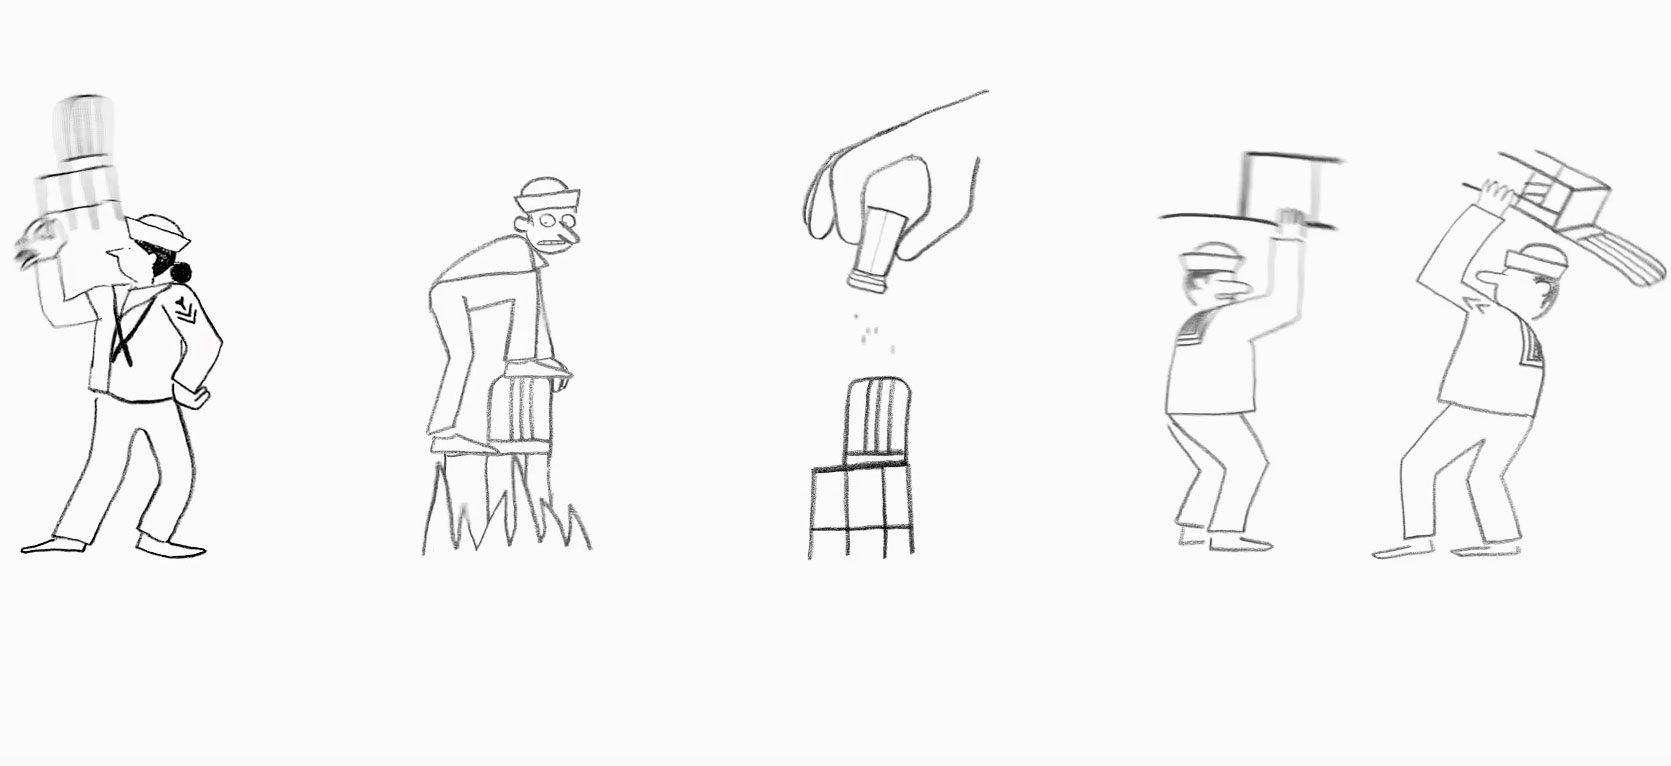 An image from the Jullien brothers' new animation for Emeco